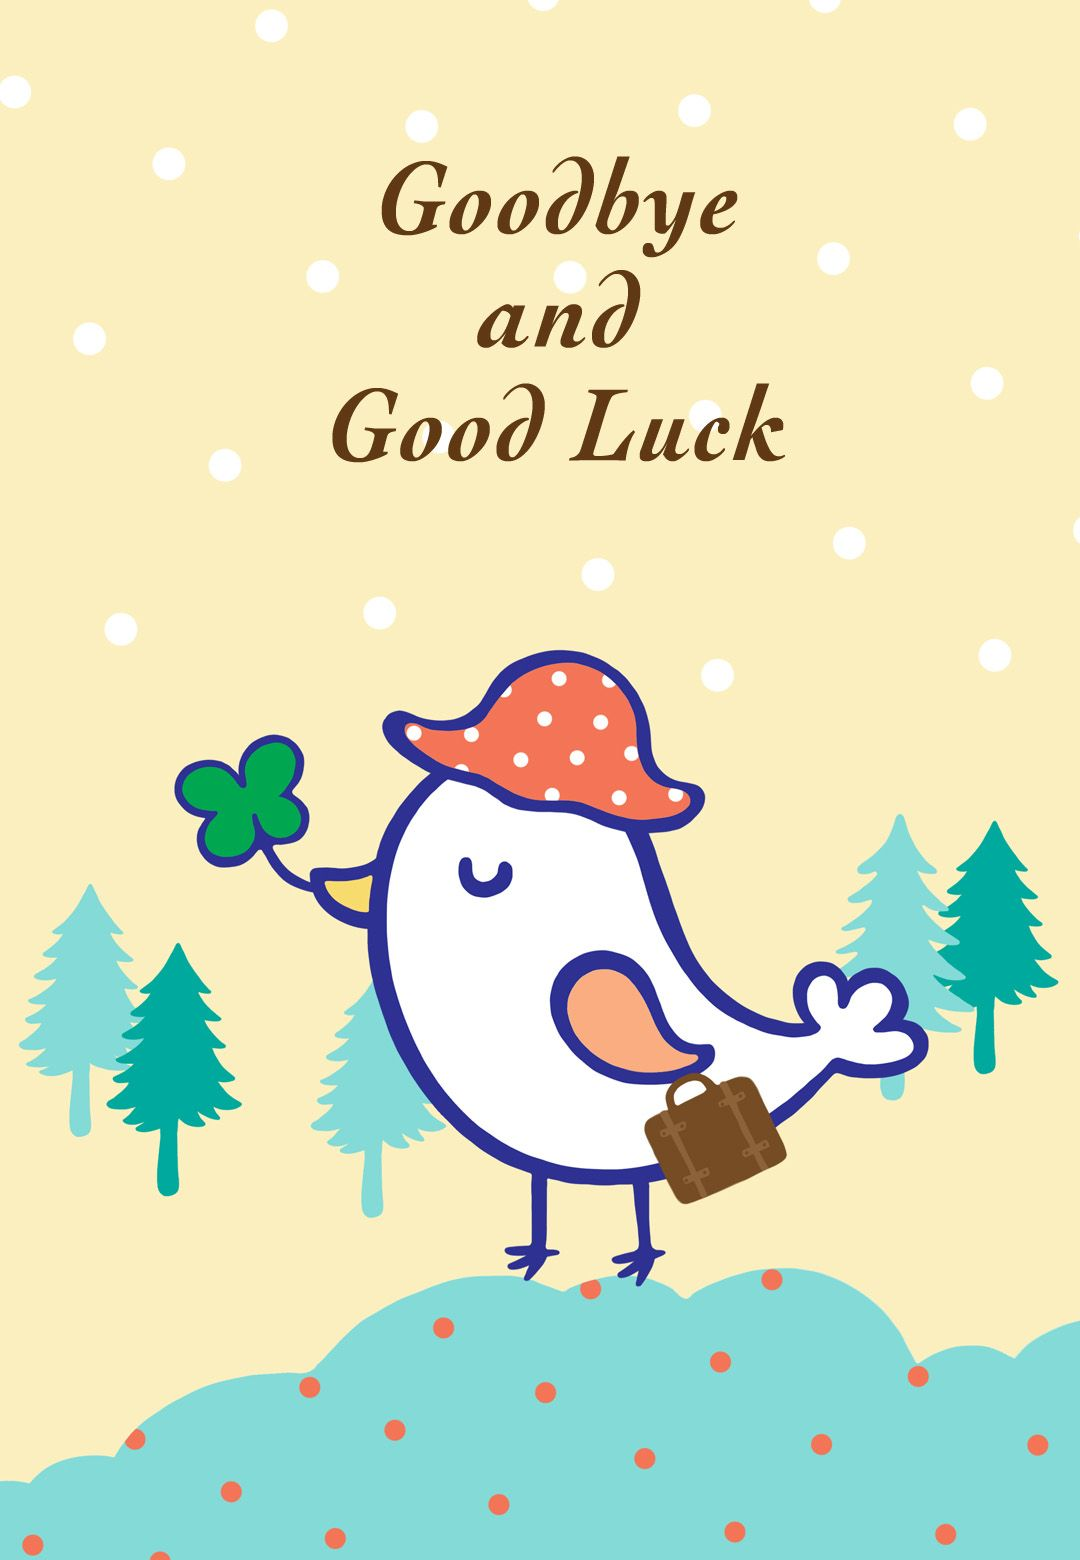 free printable goodbye and good luck greeting card | littlestar